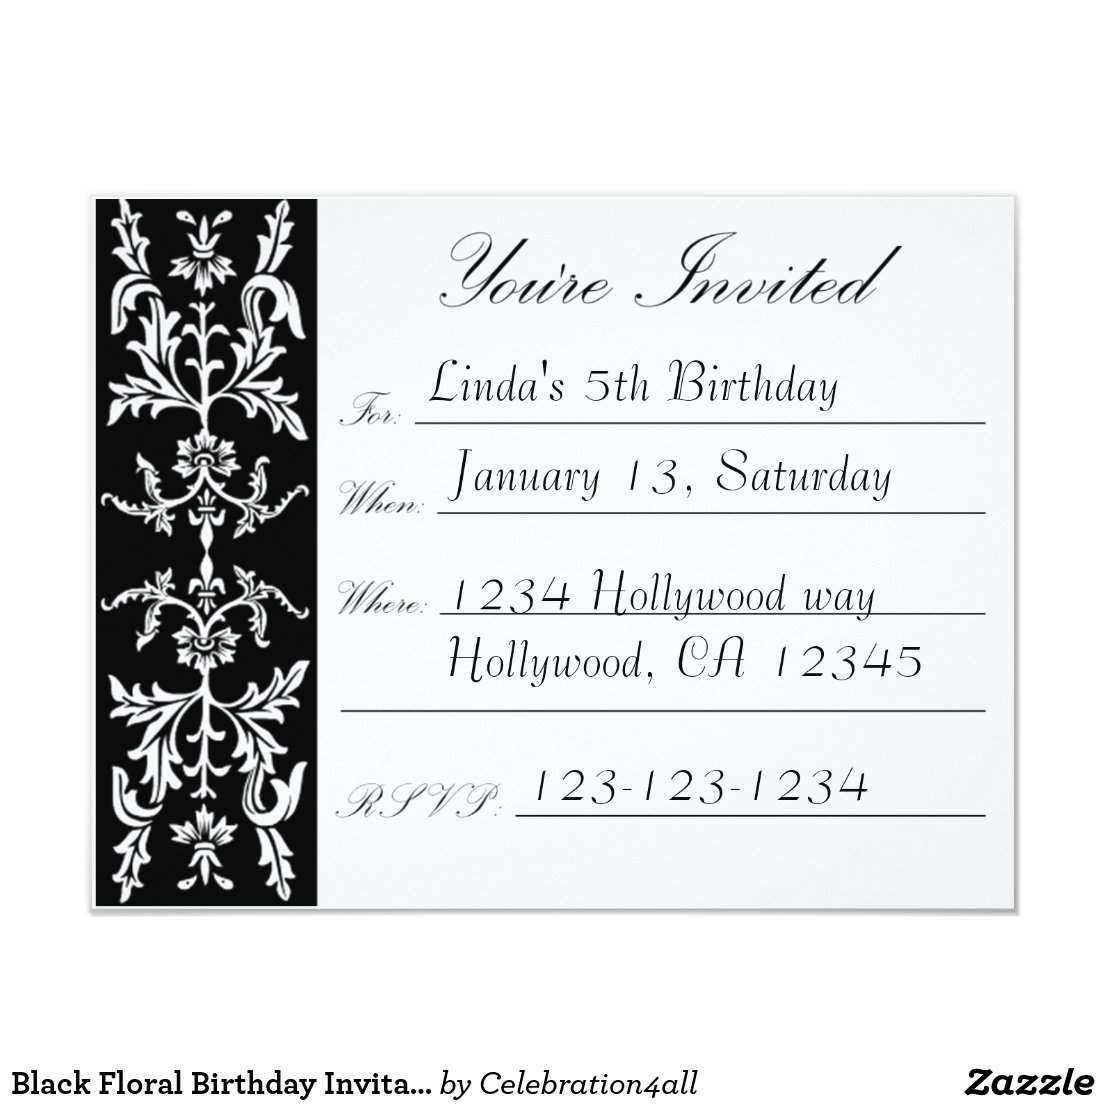 Black Floral Birthday Invitation